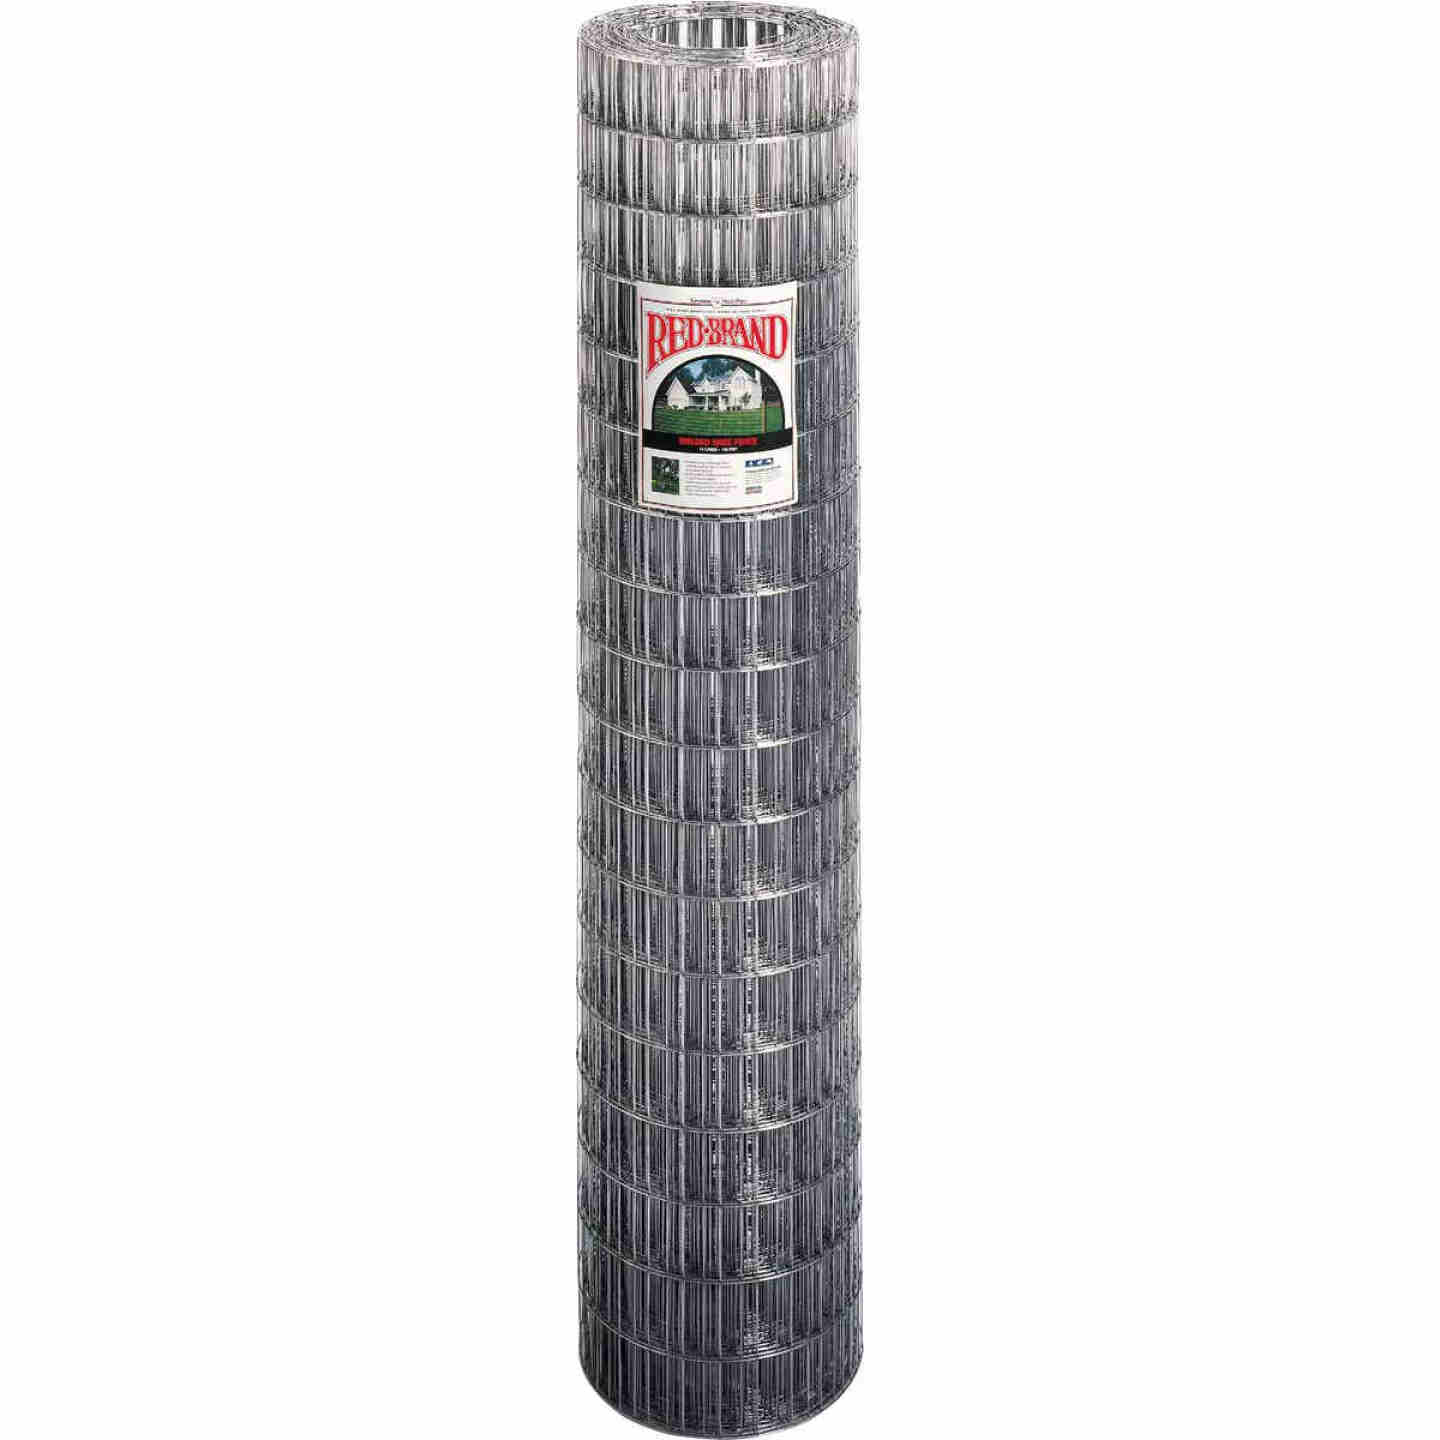 Keystone Red Brand 48 In. H. x 50 Ft. L. (2x4) Welded Wire Utility Fence Image 1